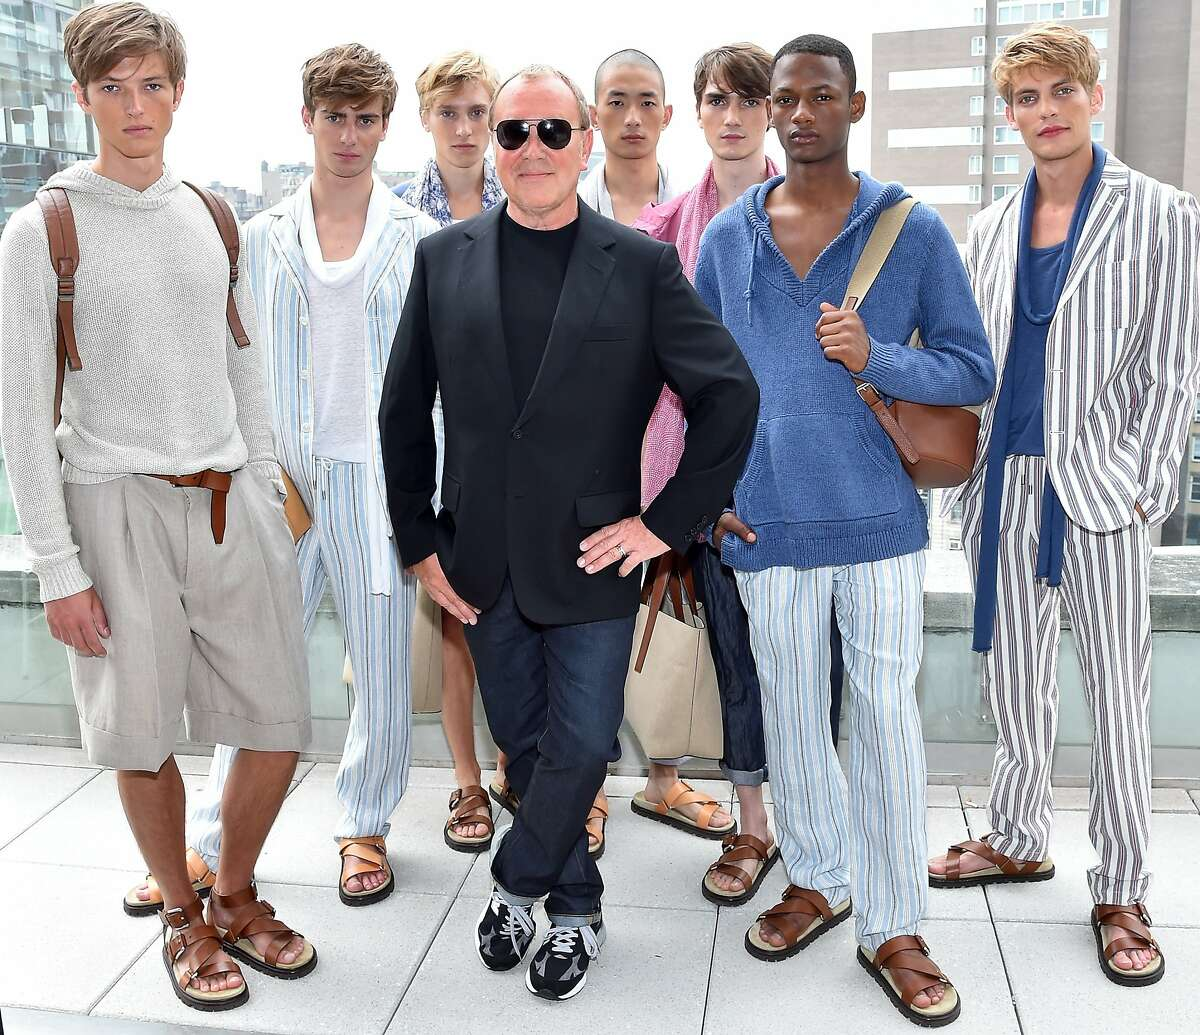 NEW YORK, NY - JULY 15: (EDITORS NOTE: Retransmission of image 480764150 with alternate crop.) Designer Michael Kors (C) and models pose at the Michael Kors Spring 2016 Presentation during New York Fashion Week: Men's at Spring Studios on July 15, 2015 in New York City. (Photo by Larry Busacca/Getty Images for Michael Kors)